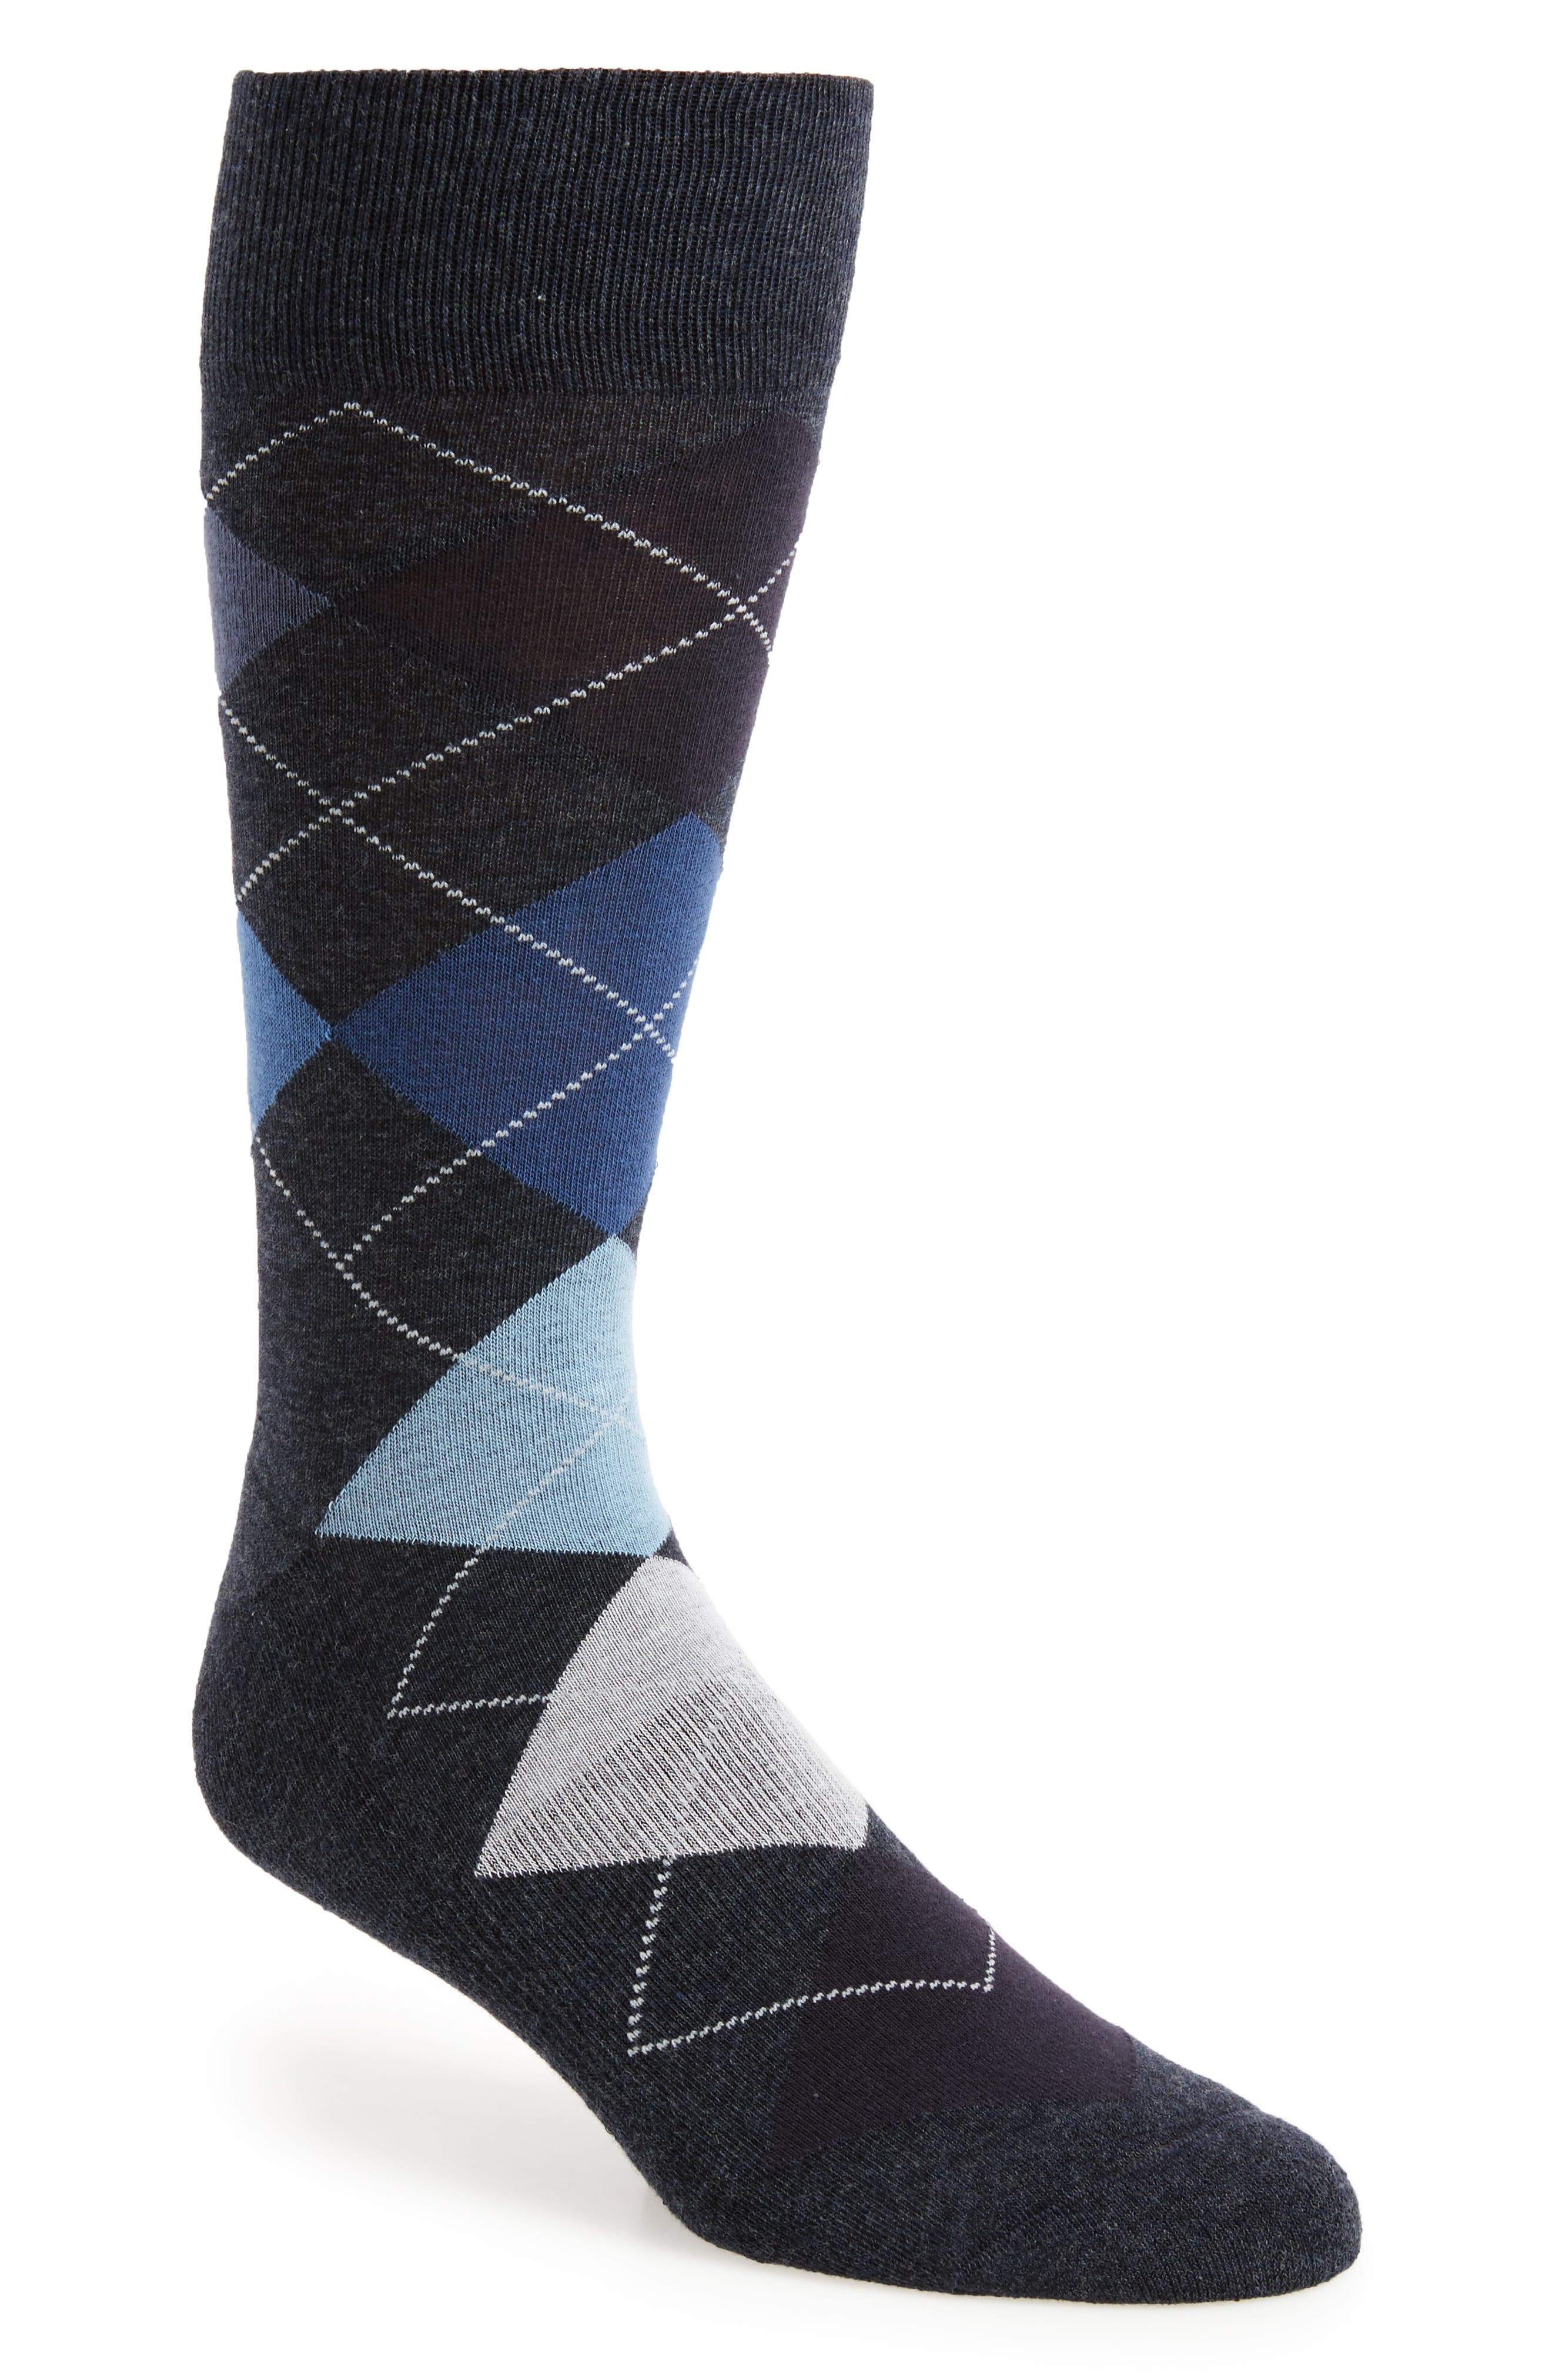 Gradient Argyle Socks,                             Main thumbnail 1, color,                             Navy Heather